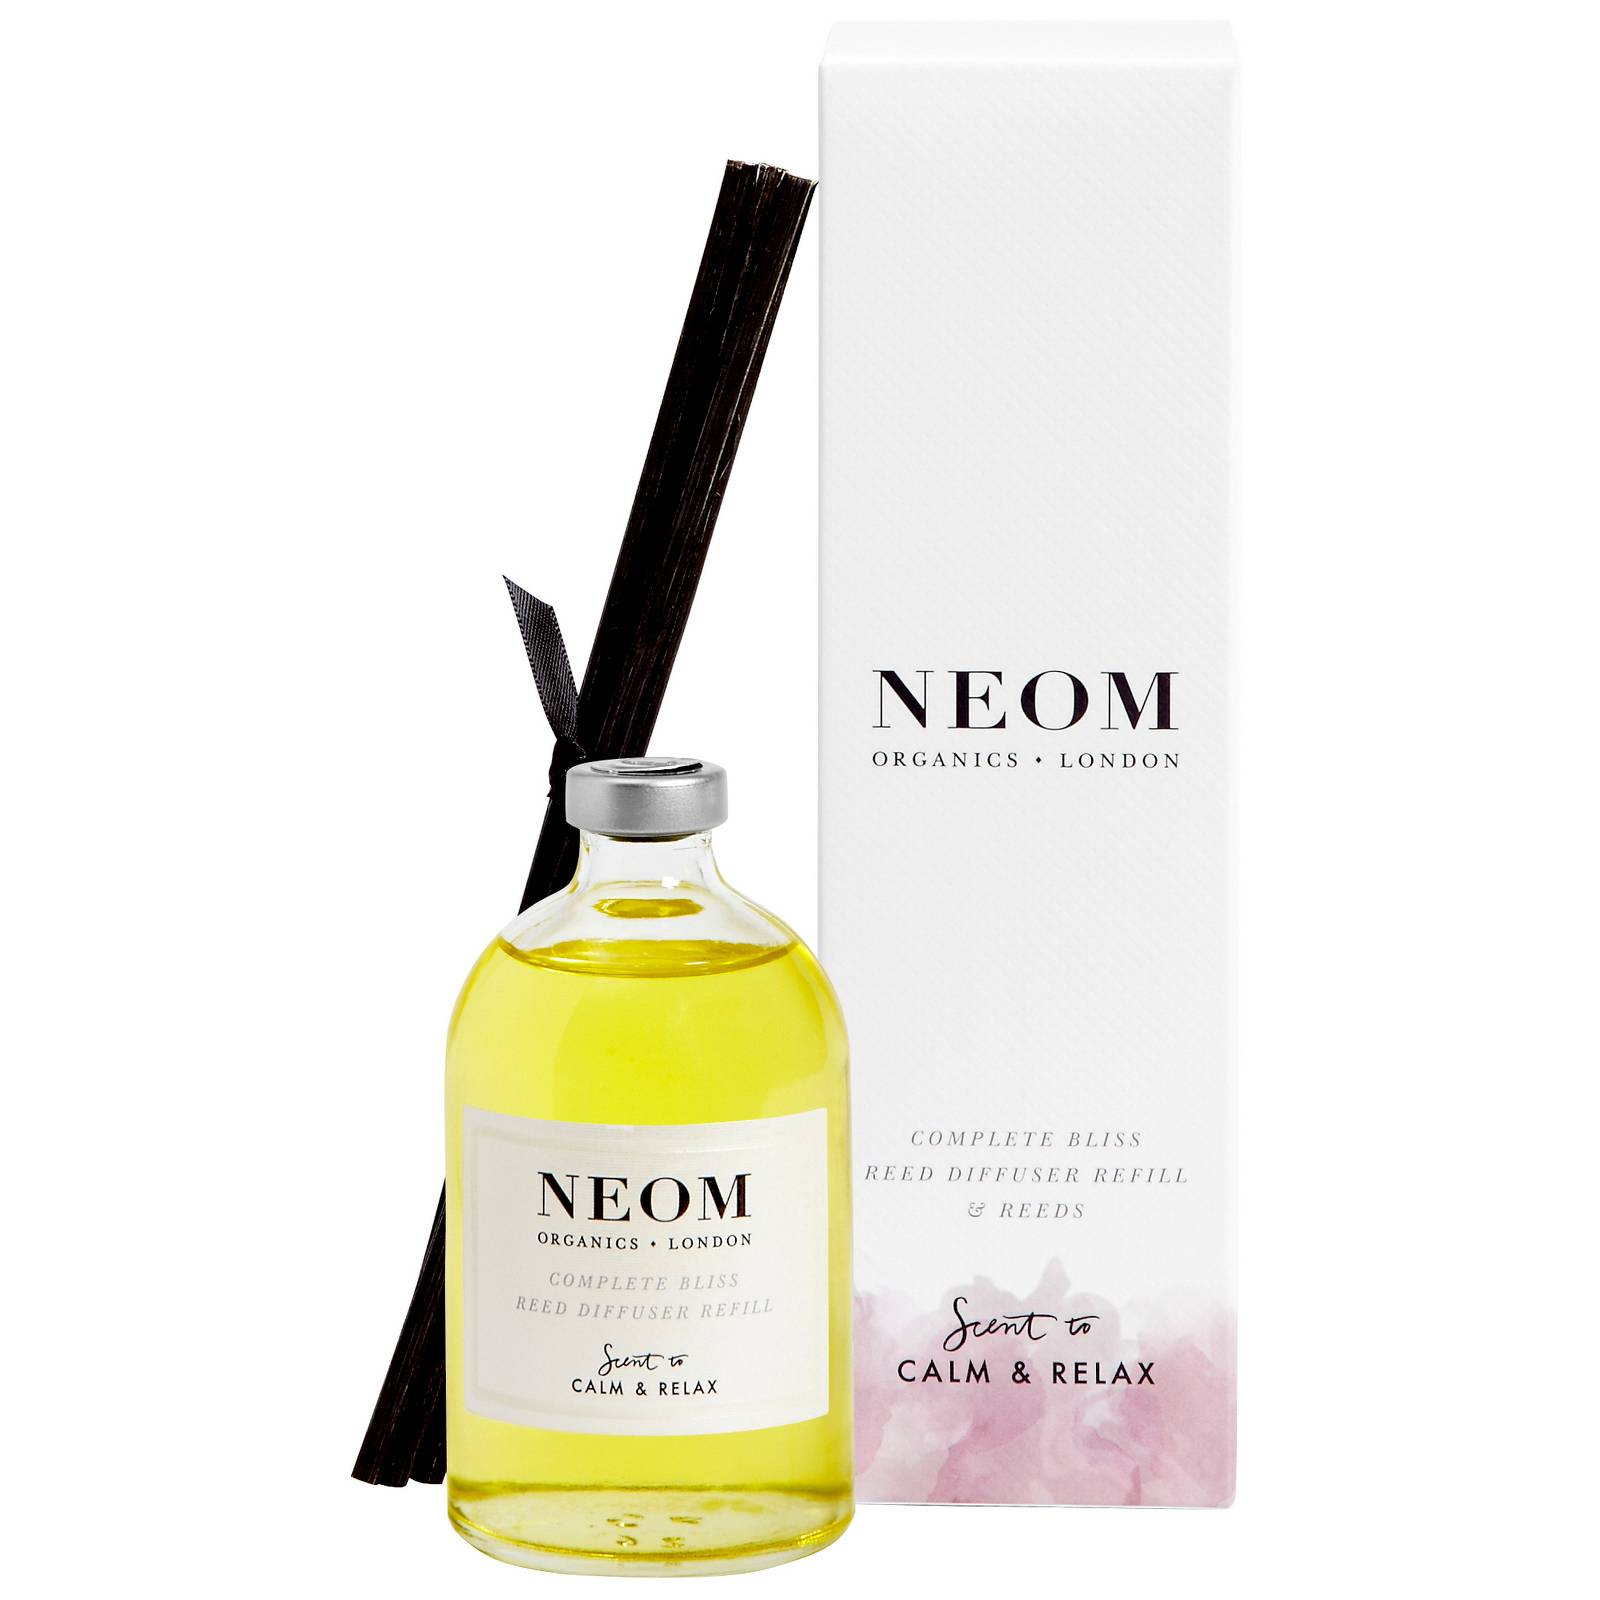 Neom Organics London Scent To Calm & Relax Beatitudine completa Reed diffusore ricarica 100ml